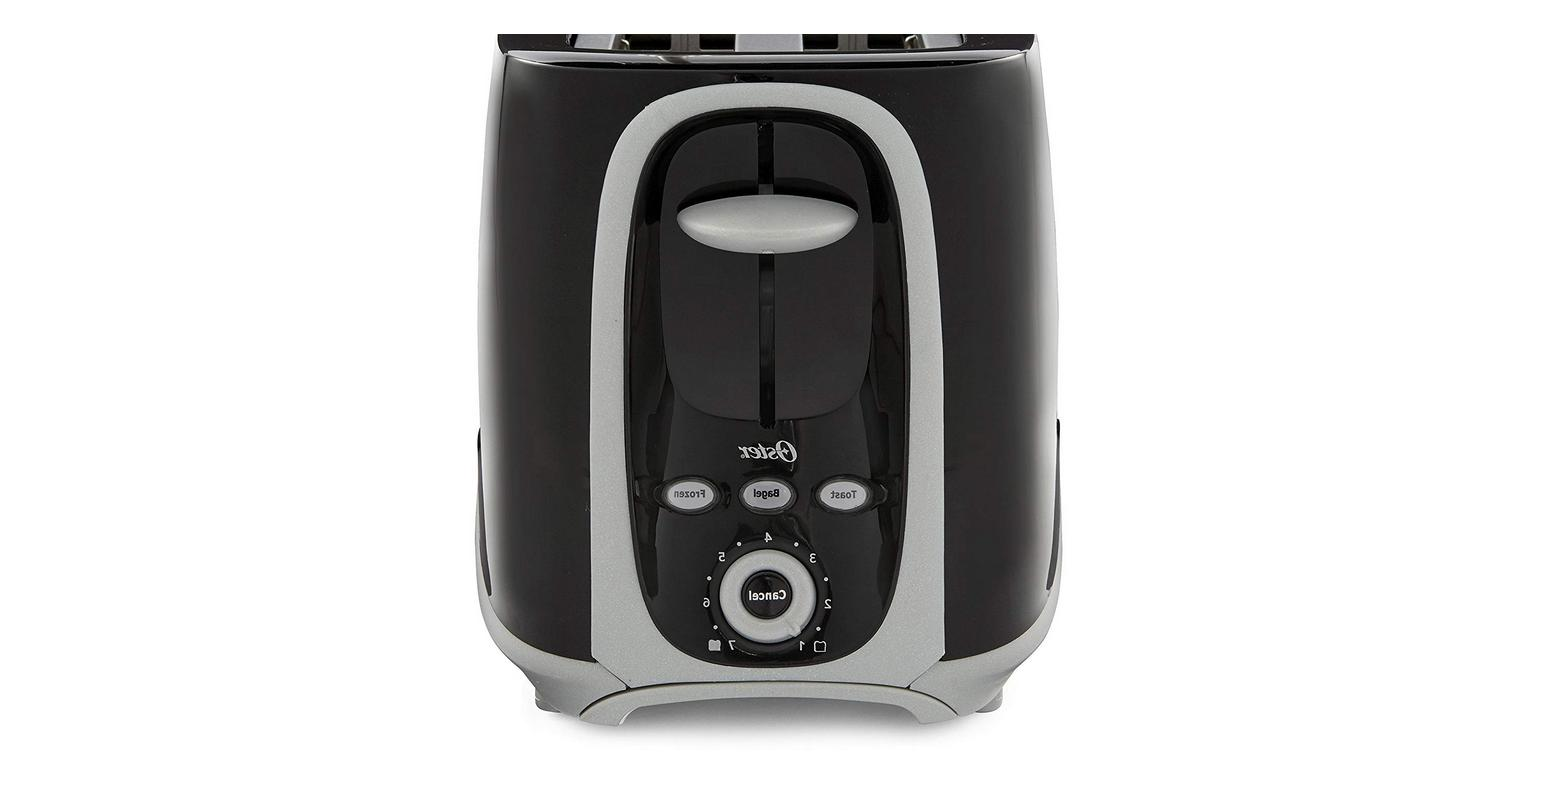 Oster Toaster -